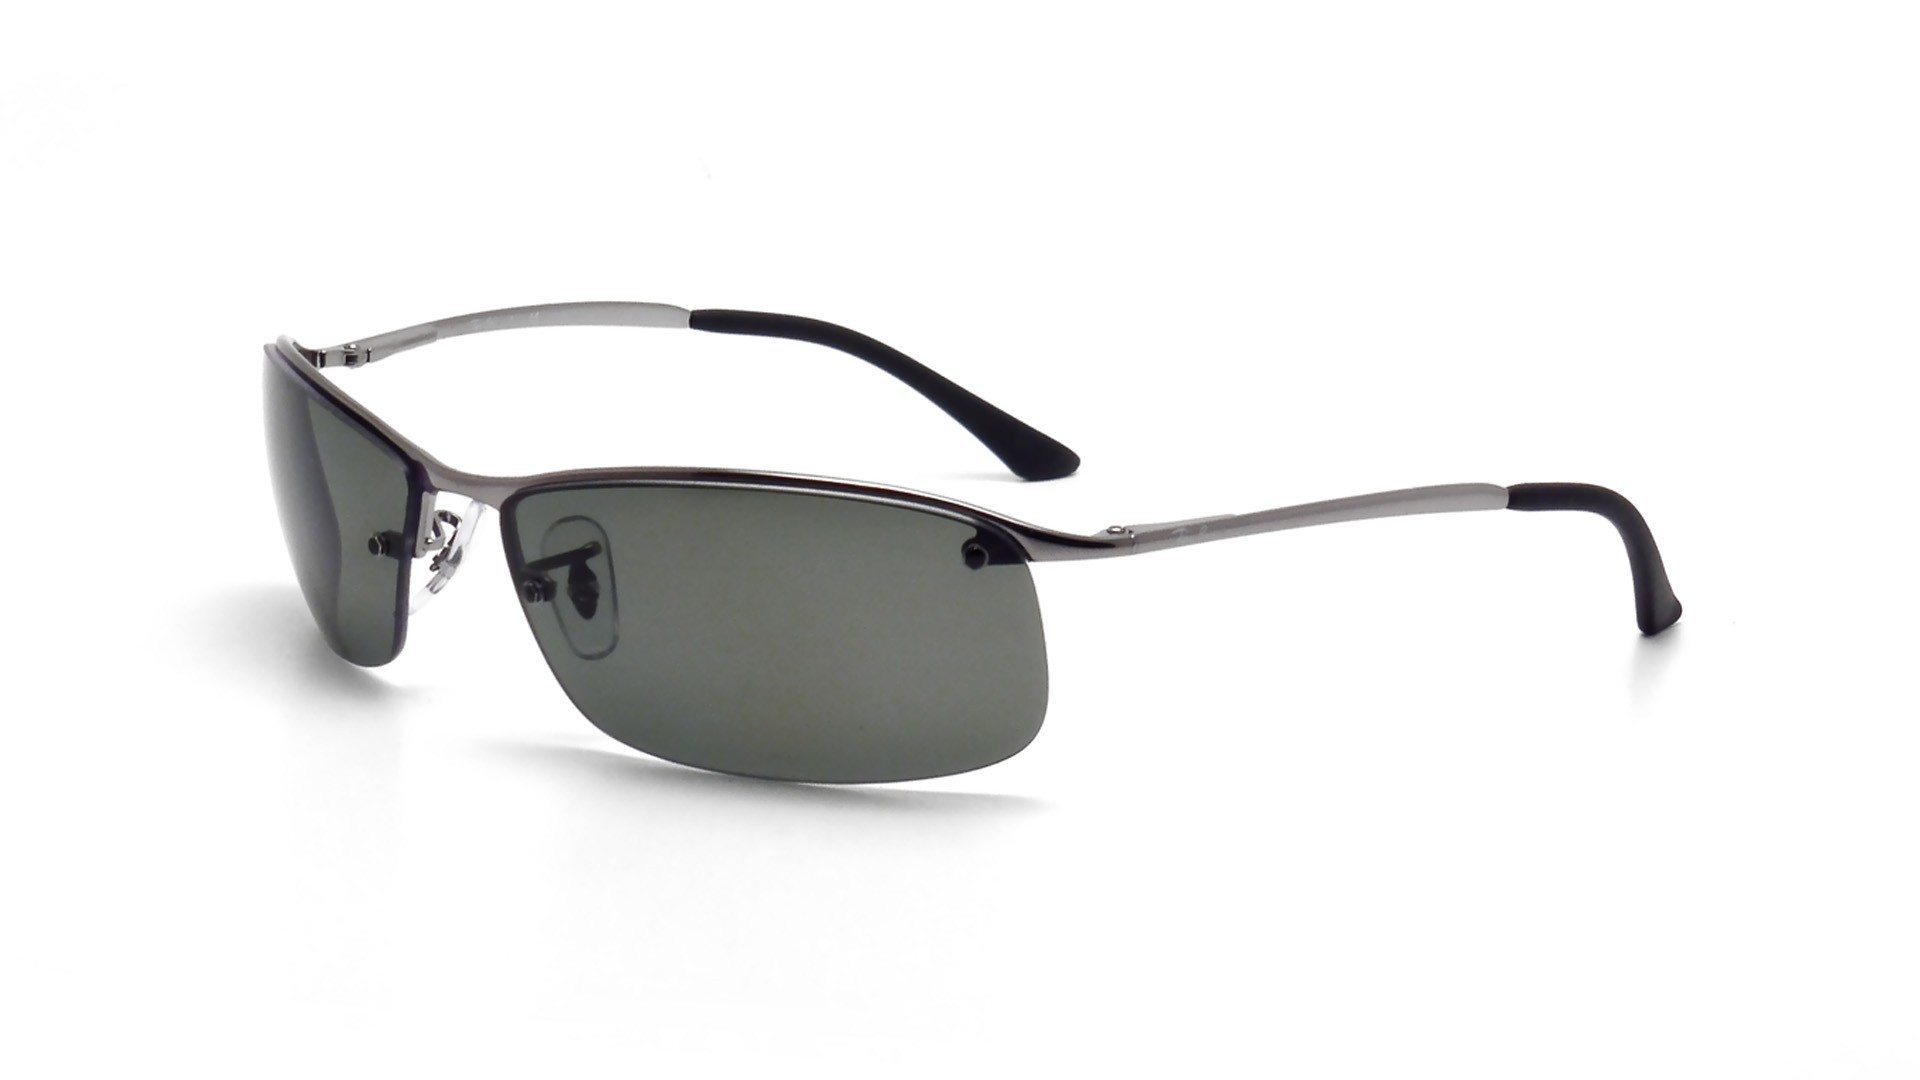 f940c8394d1 Sunglasses Ray-Ban RB3183 004 9A 63-15 Silver Large Polarized